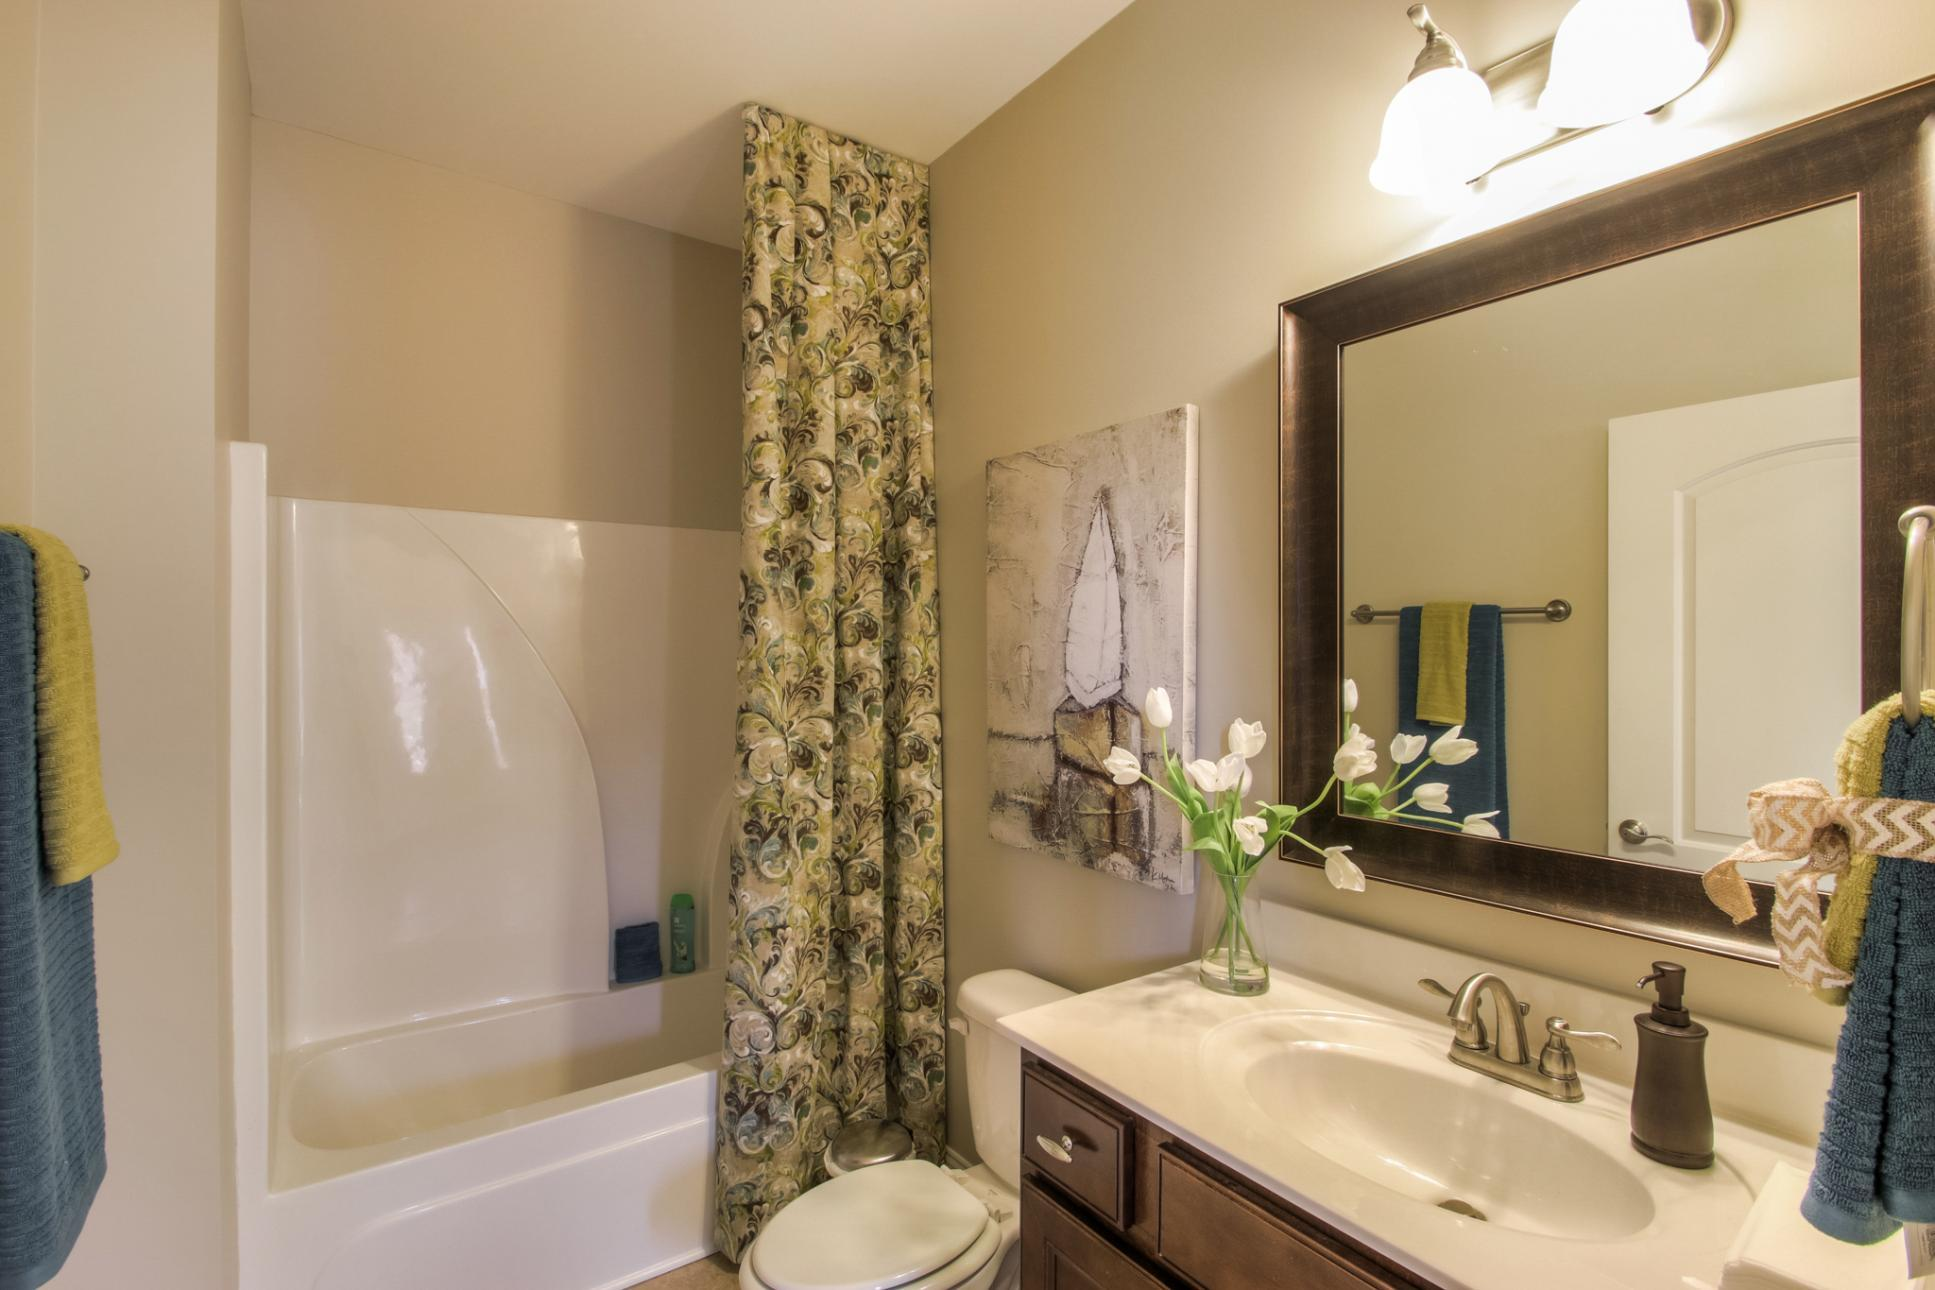 Bathroom featured in The Everleigh Courtyard Cottage By Goodall Homes in Chattanooga, GA